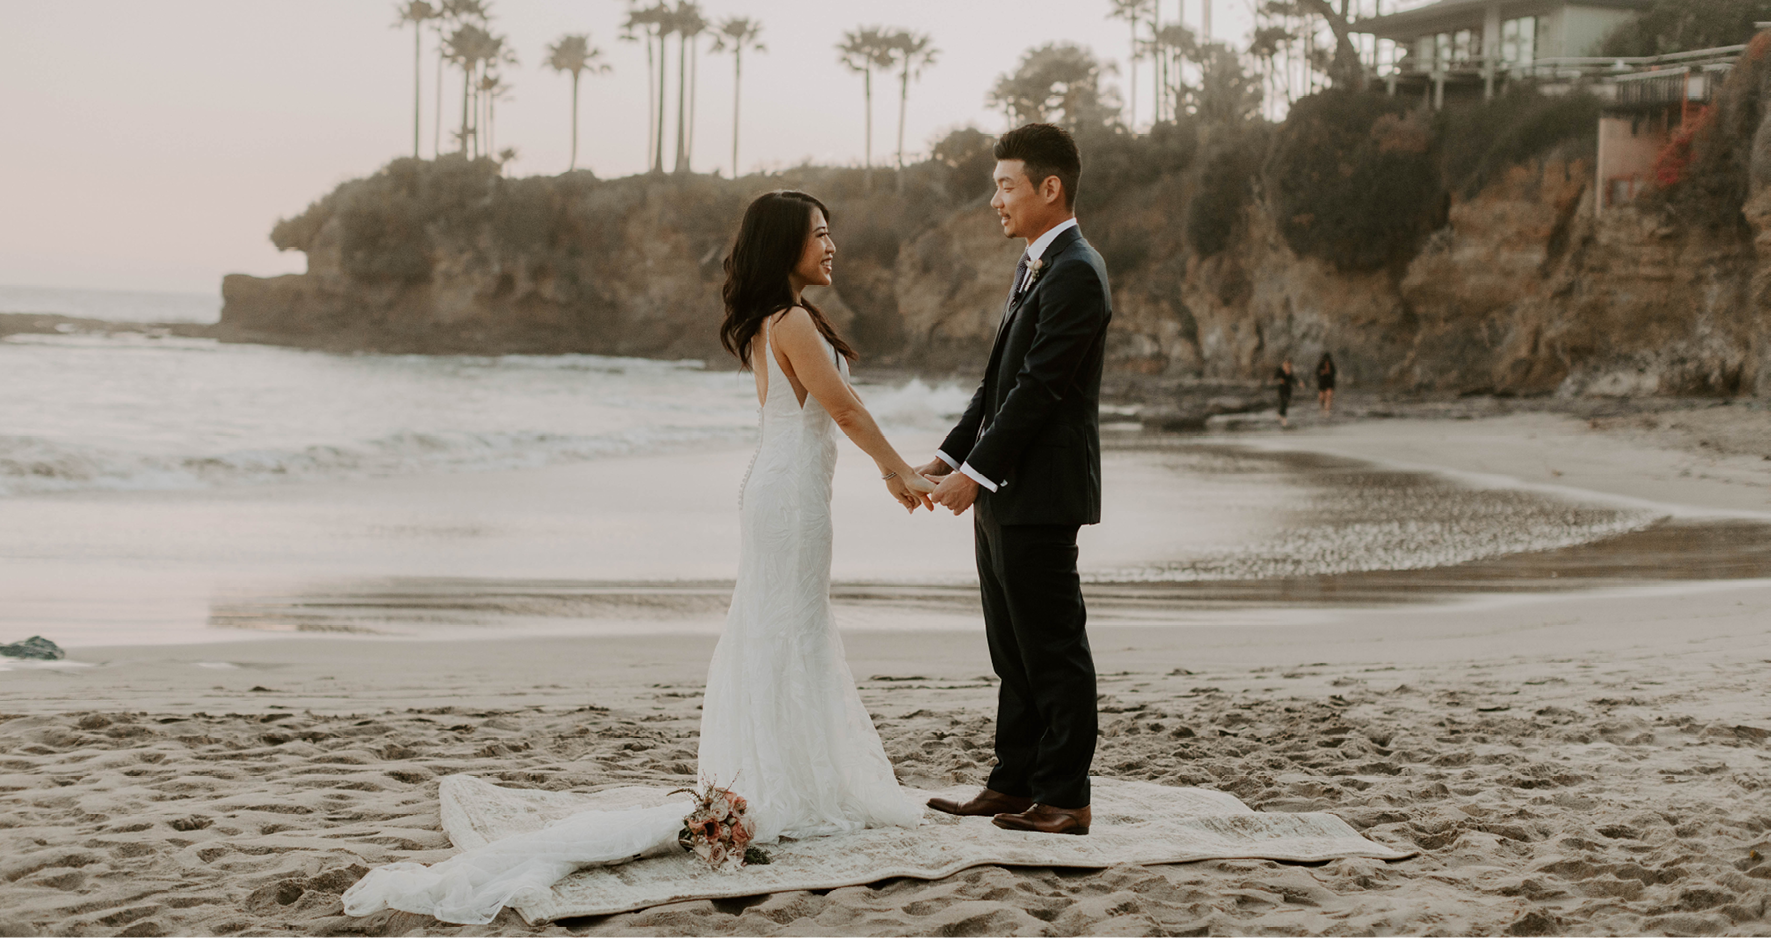 Real Bride and Groom Holding Hands at Intimate and Casual Beaching Wedding While Brides Wearing a Maggie Sottero Wedding Dress